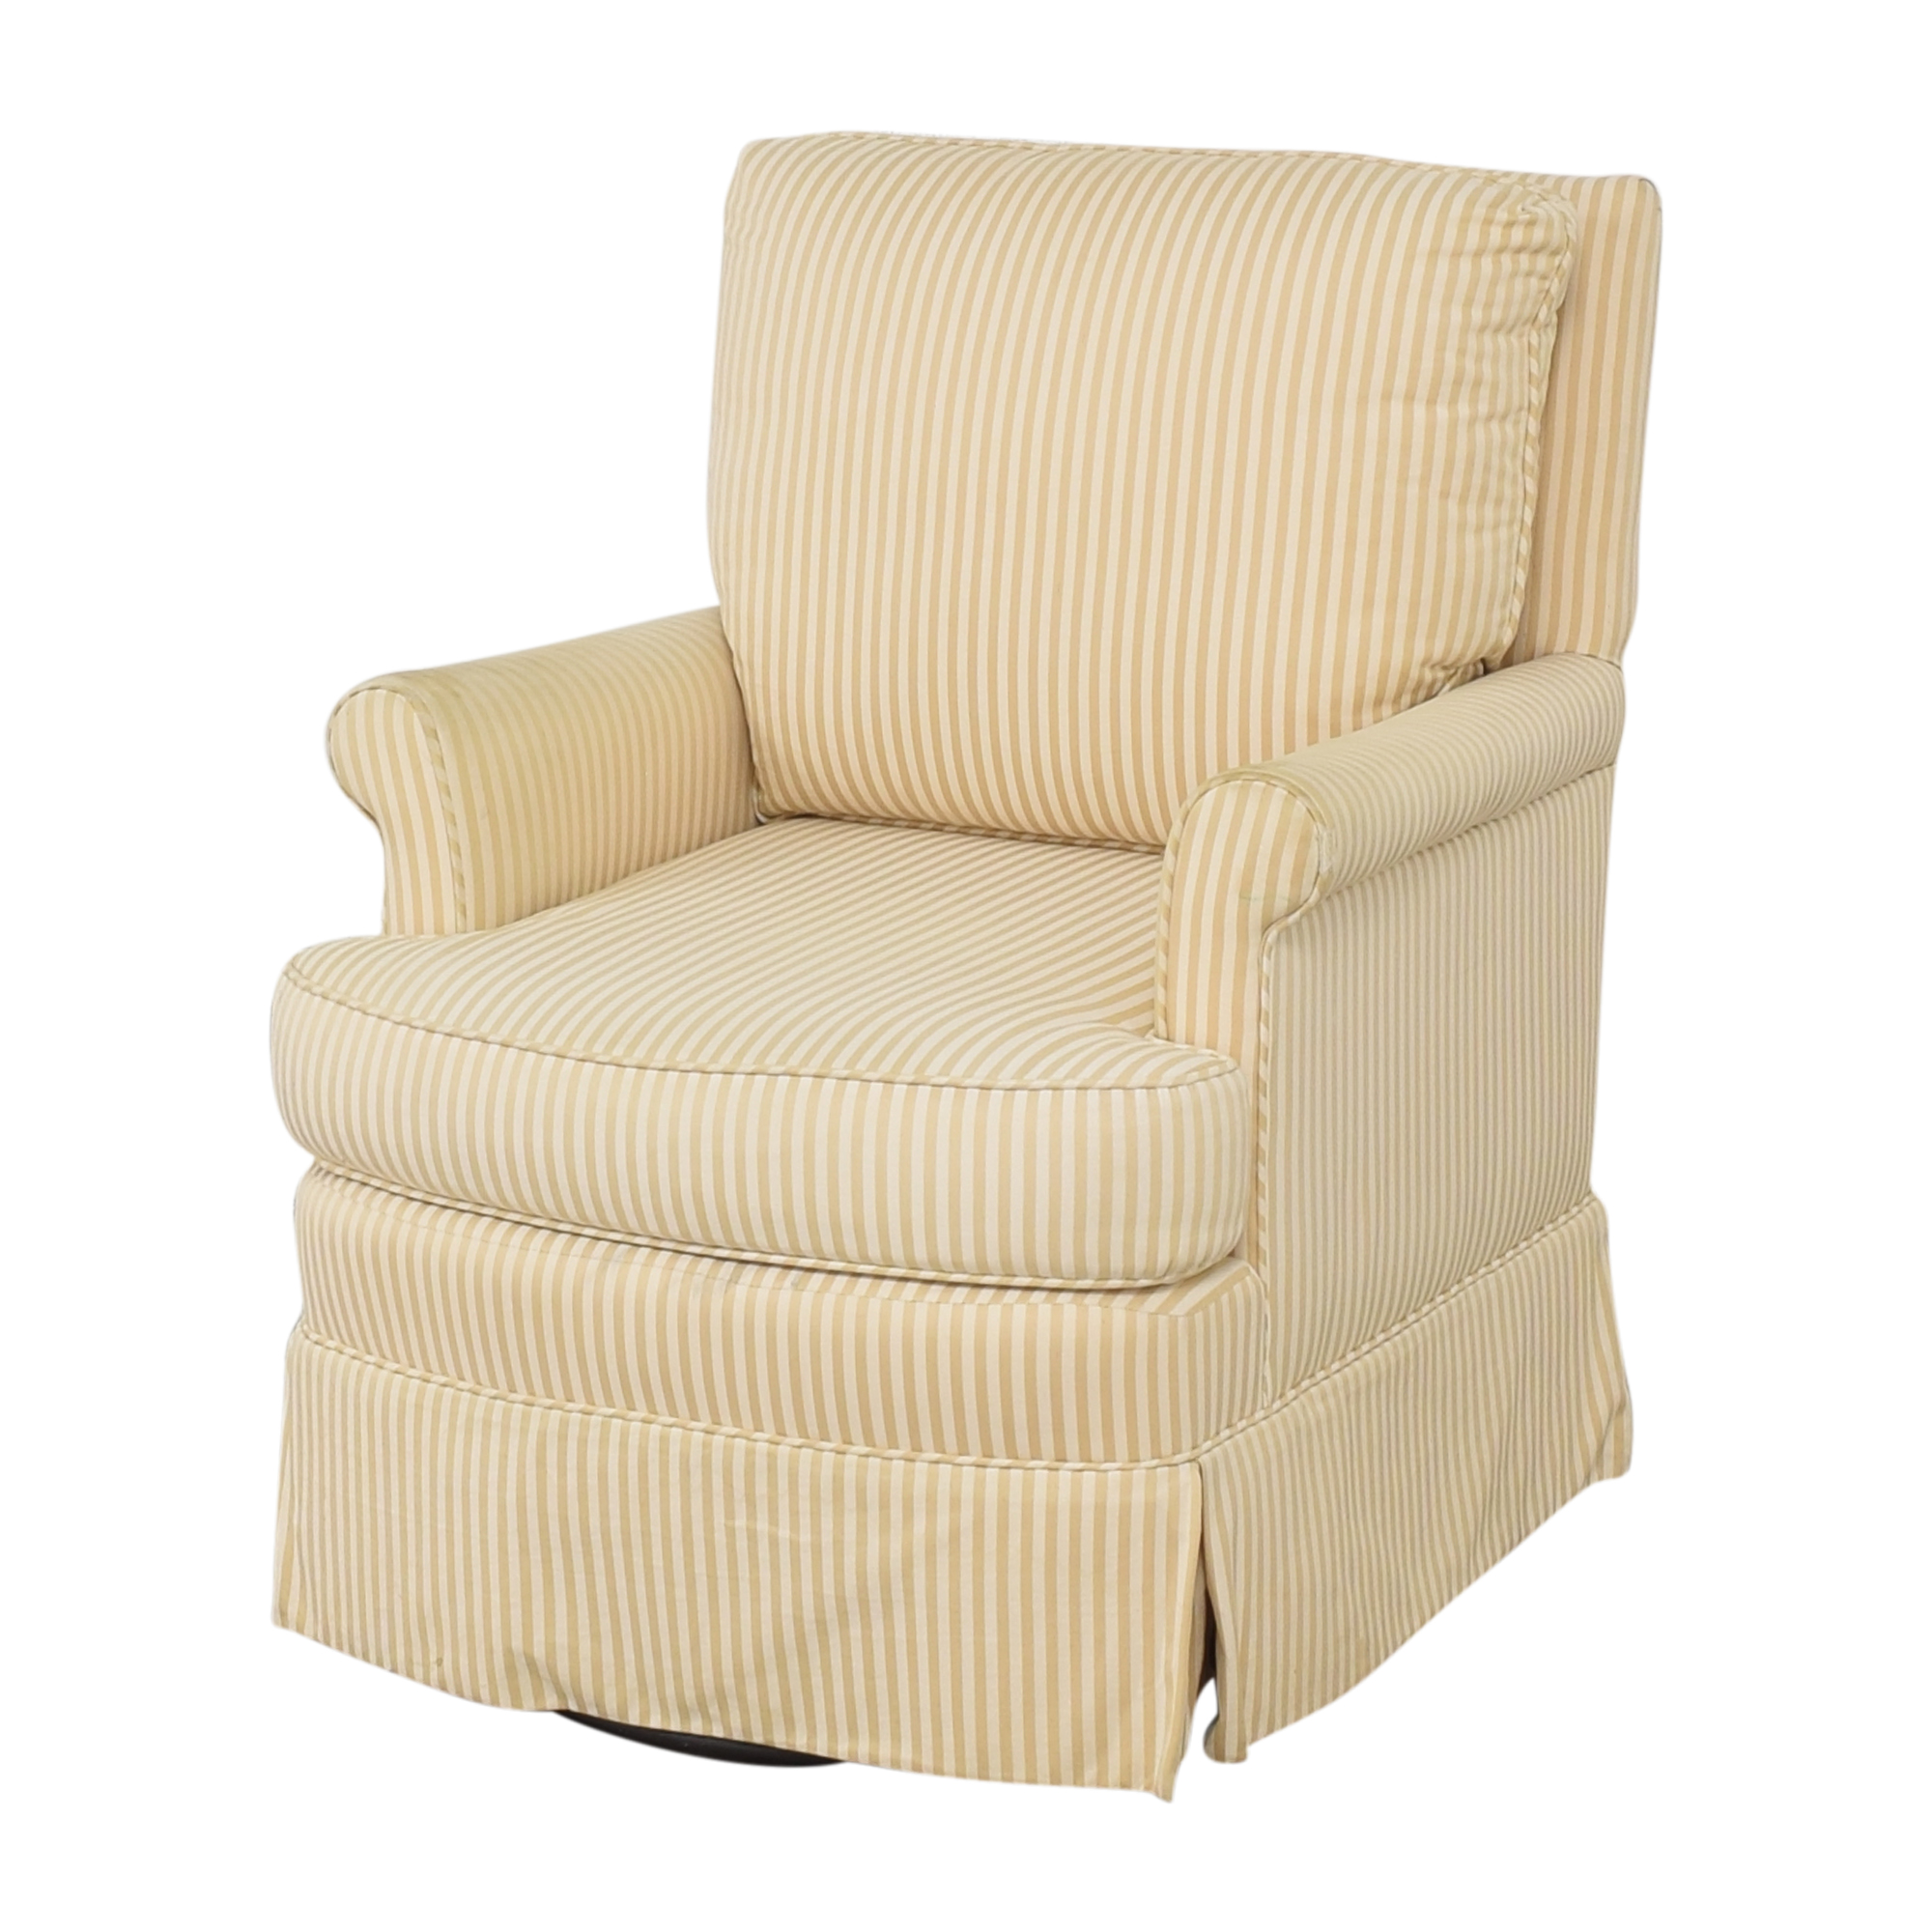 Cox Manufacturing Cox Manufacturing Swivel Glider Chair second hand